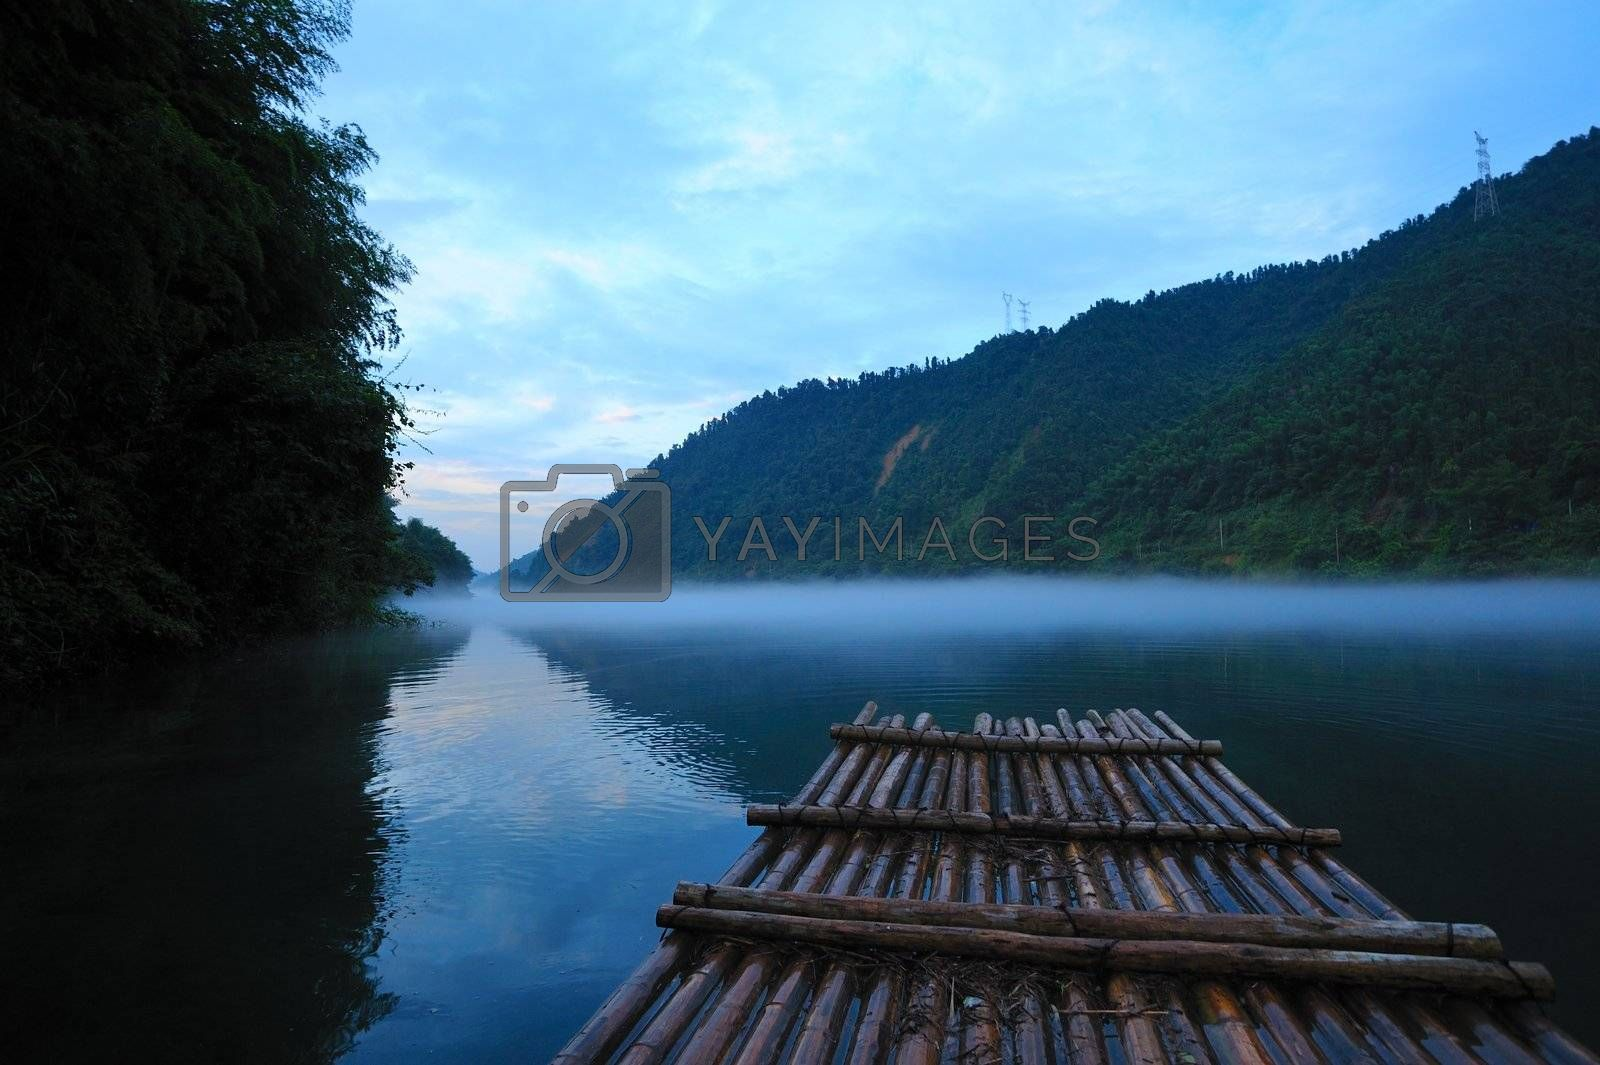 River landscape at sunset with fog rolling across the chilly river water, photo taken in Hunan province of China